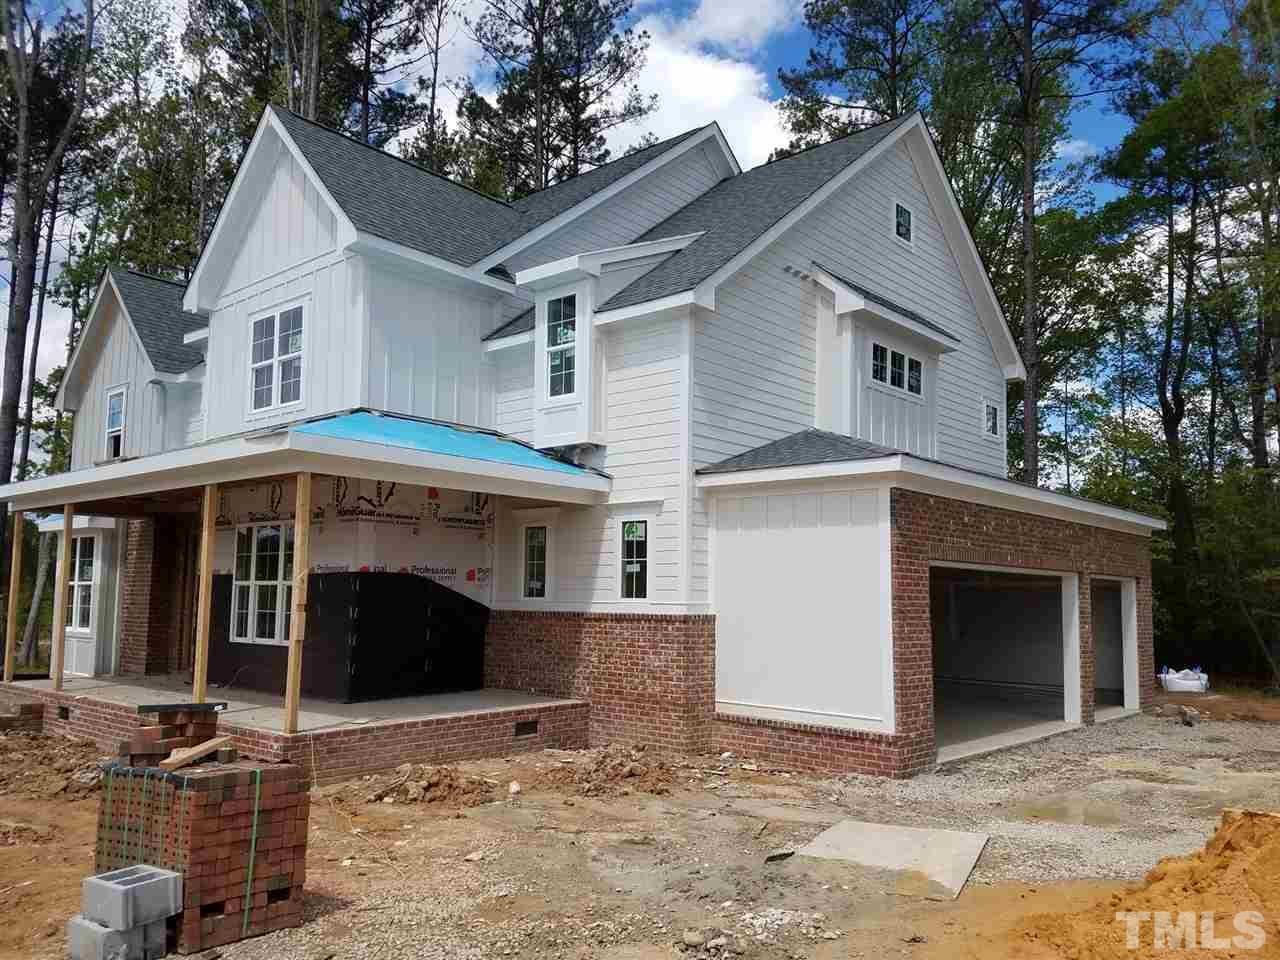 Custom built home by Gray Line Builders.  Foyer opens to dramatic stair design, Family room with Coffered ceilings, Kit open to family and breakfast area, huge center island.  Hardward first flloor, stairs, and 2nd floor hall. custom trim work throughout the home.  Owners suite with widow seat, spa bath with free standing tub Large walk in shower. Huge closet.  Every bedroom as private access to bathroom.  Two bonus rooms, one could be used for media or office. Very private rear yard. FP on Screen porch